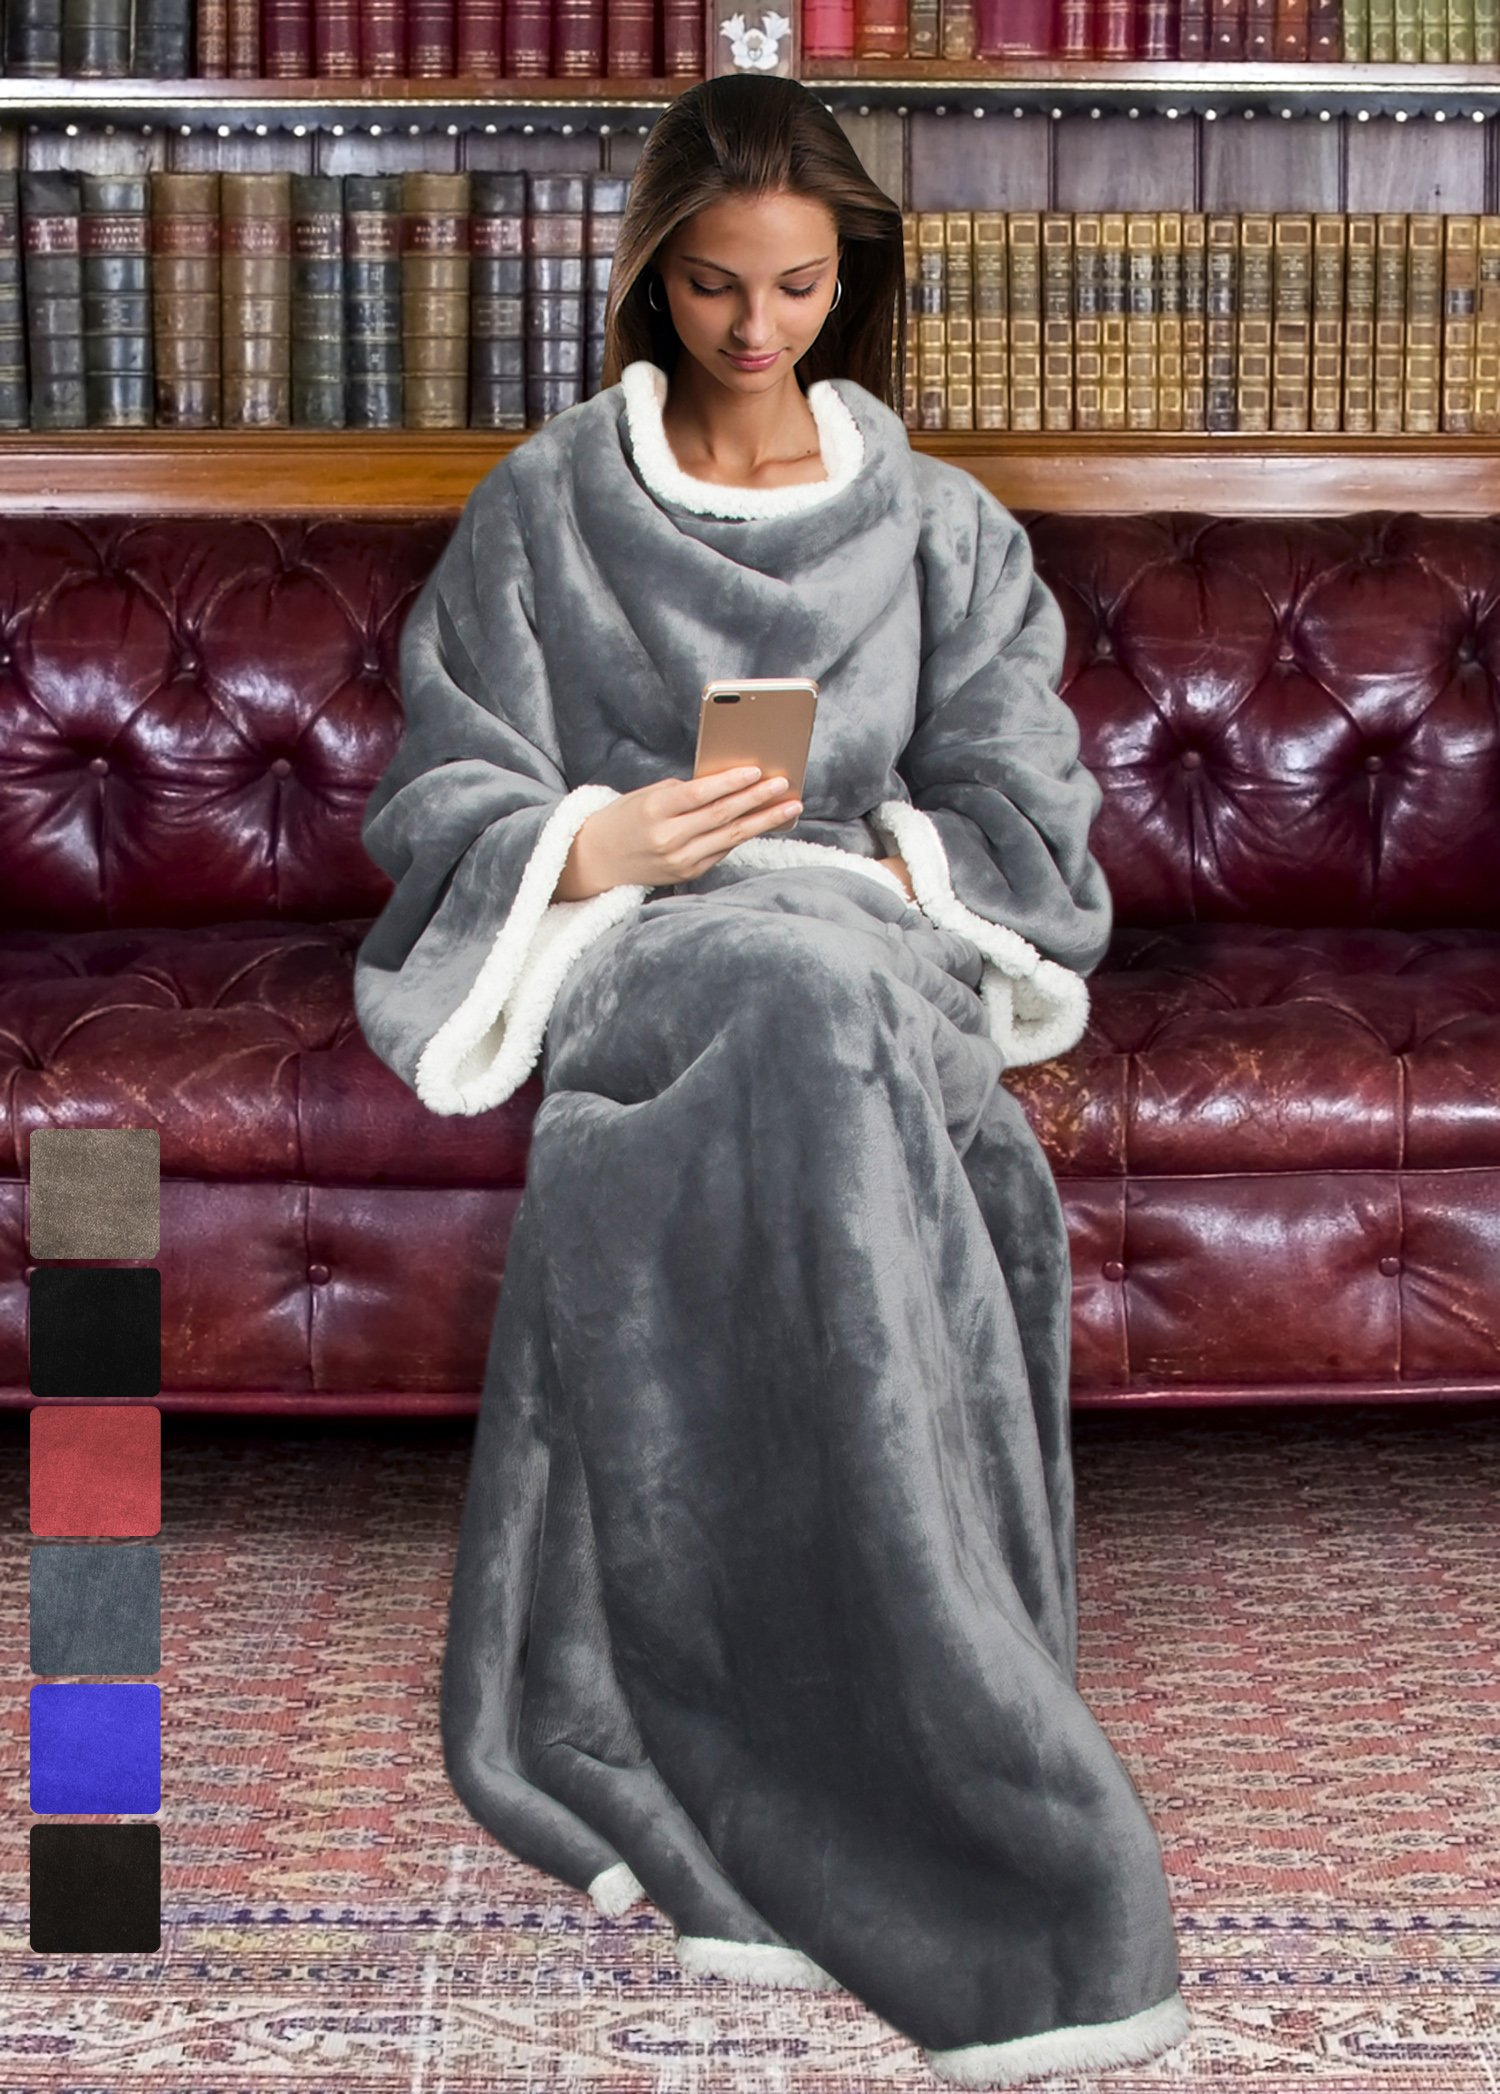 Sherpa Wearable Blanket for Adult Women and Men, Super Soft Comfy Warm Plush Throw with Sleeves TV Blanket Wrap Robe Cover for Lounge Chair Couch 72'' x 55'' Grey by Tirrinia